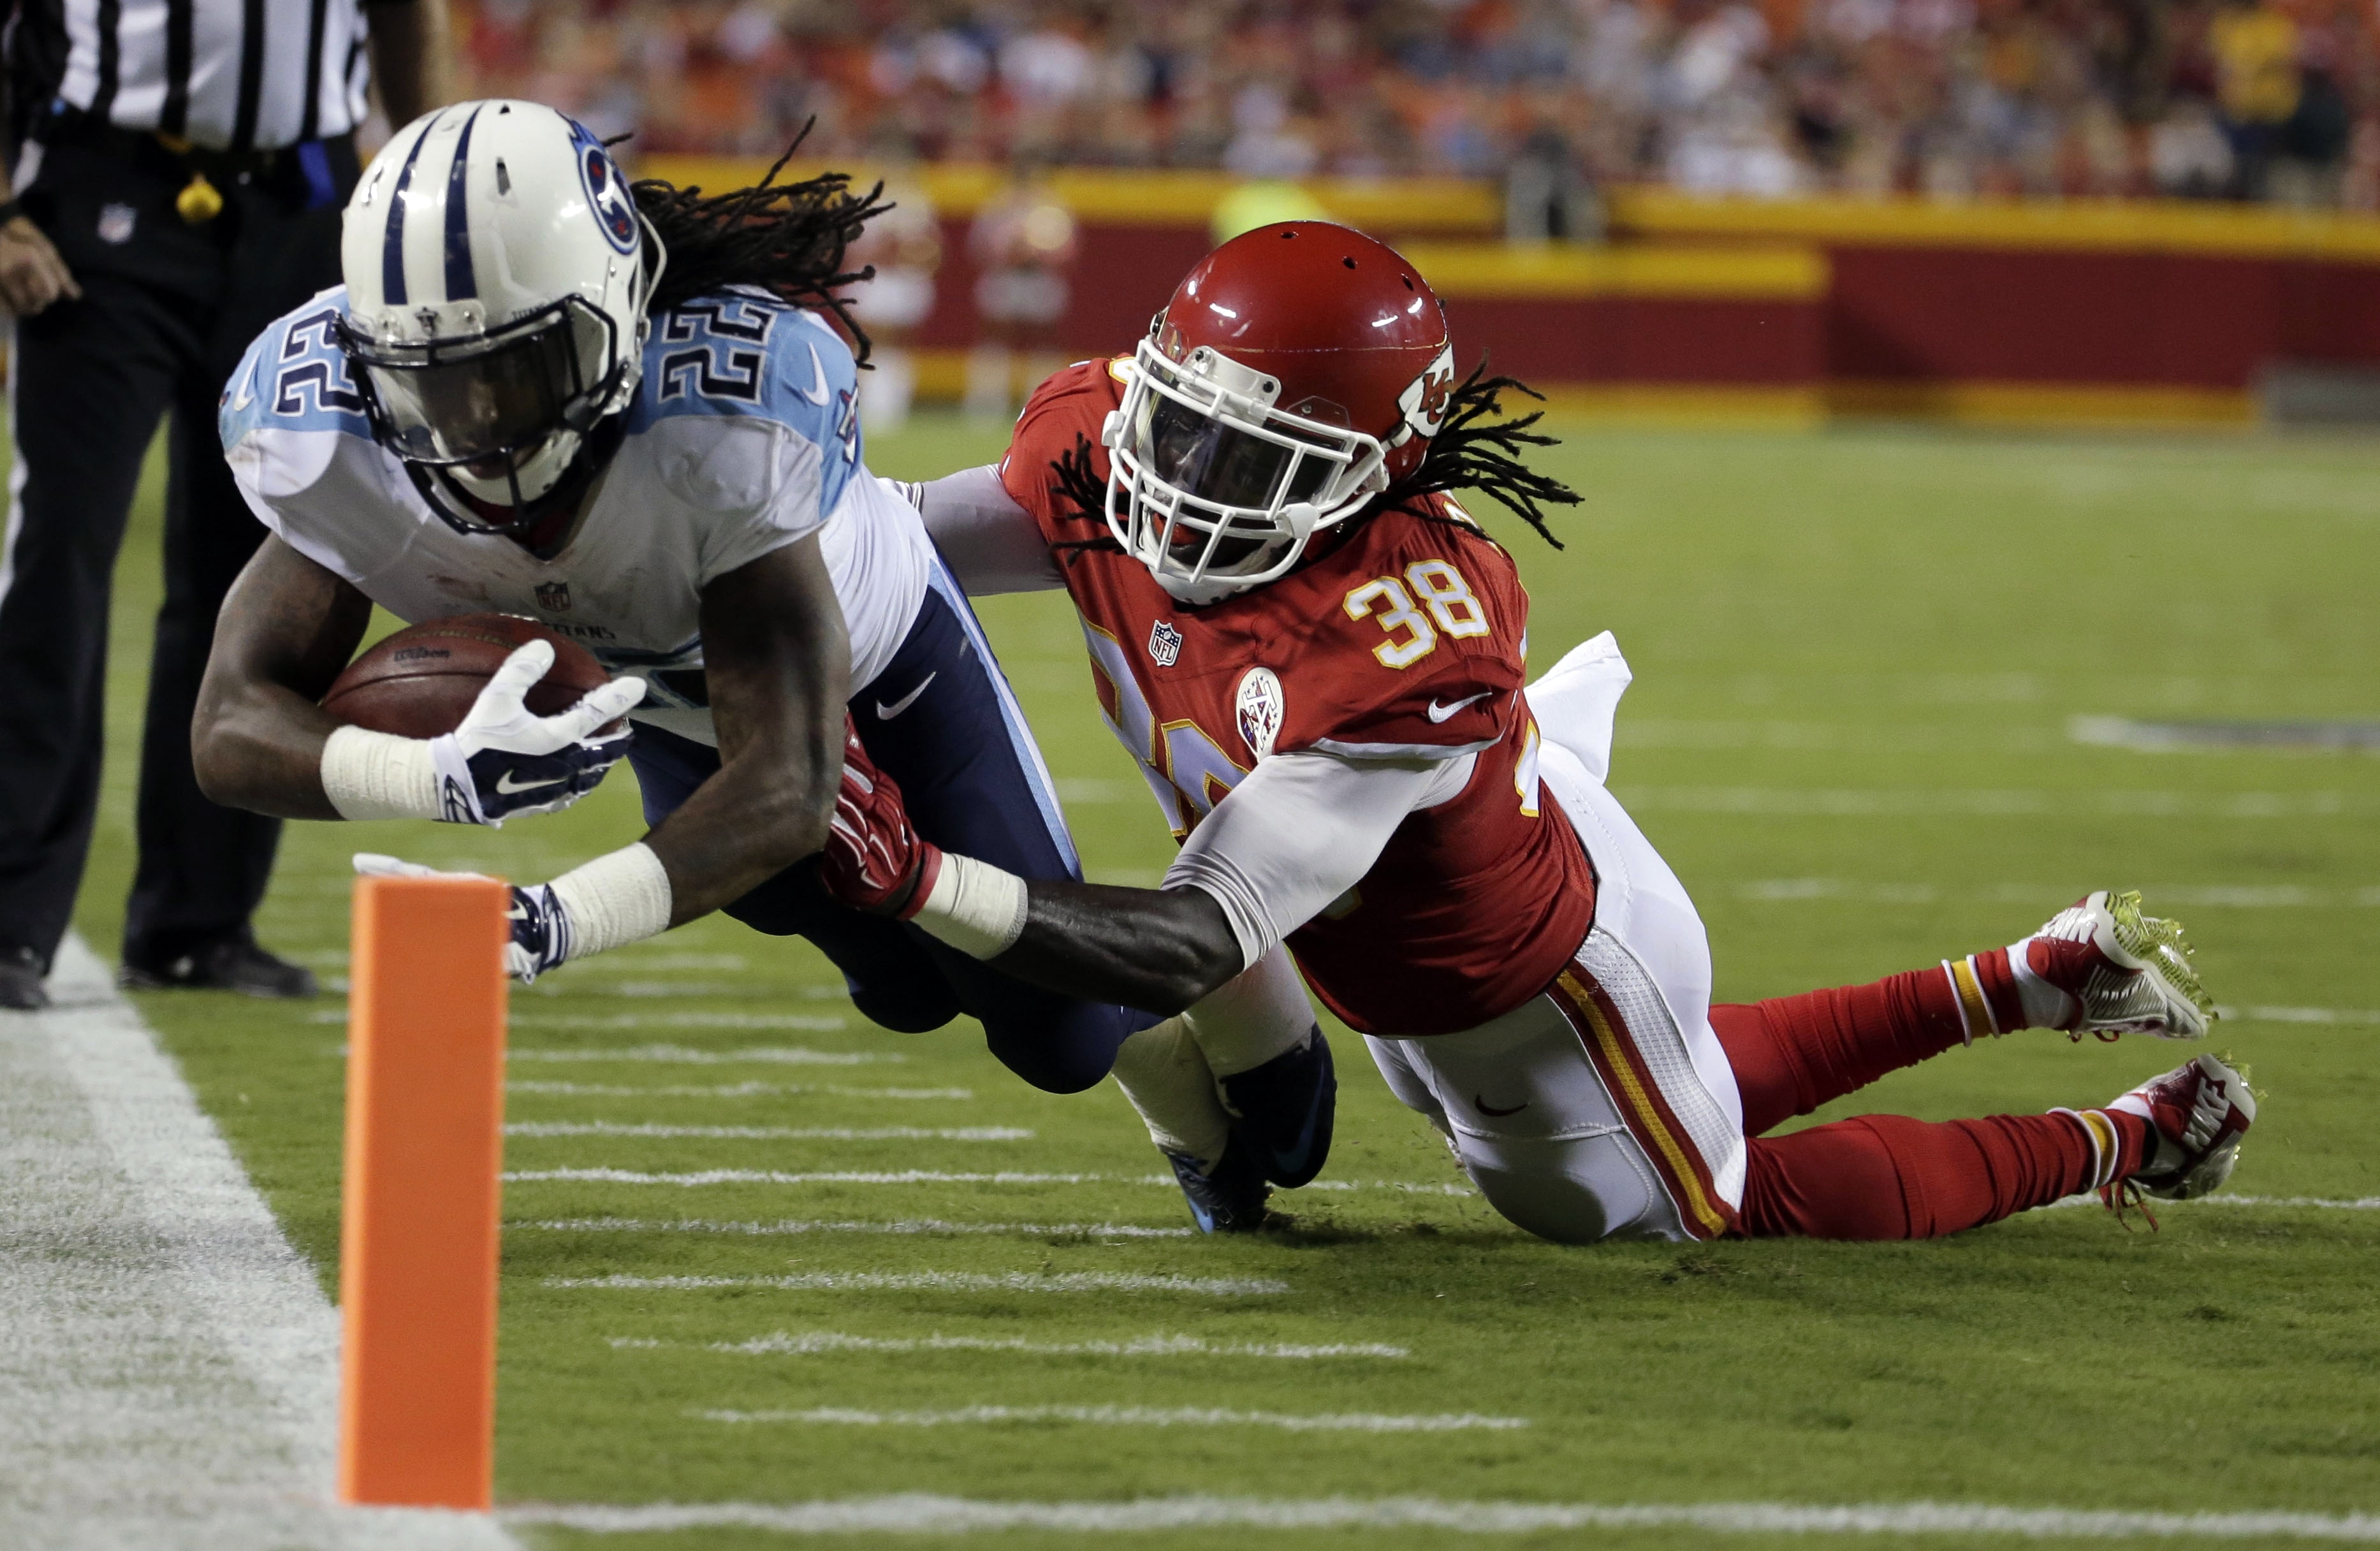 Tennessee Titans running back Dexter McCluster (22) is pushed out of bounds by Kansas City Chiefs defensive back Ron Parker (38) during the first half of a preseason NFL football game at Arrowhead Stadium in Kansas City, Mo., Friday, Aug. 28, 2015. (AP Ph